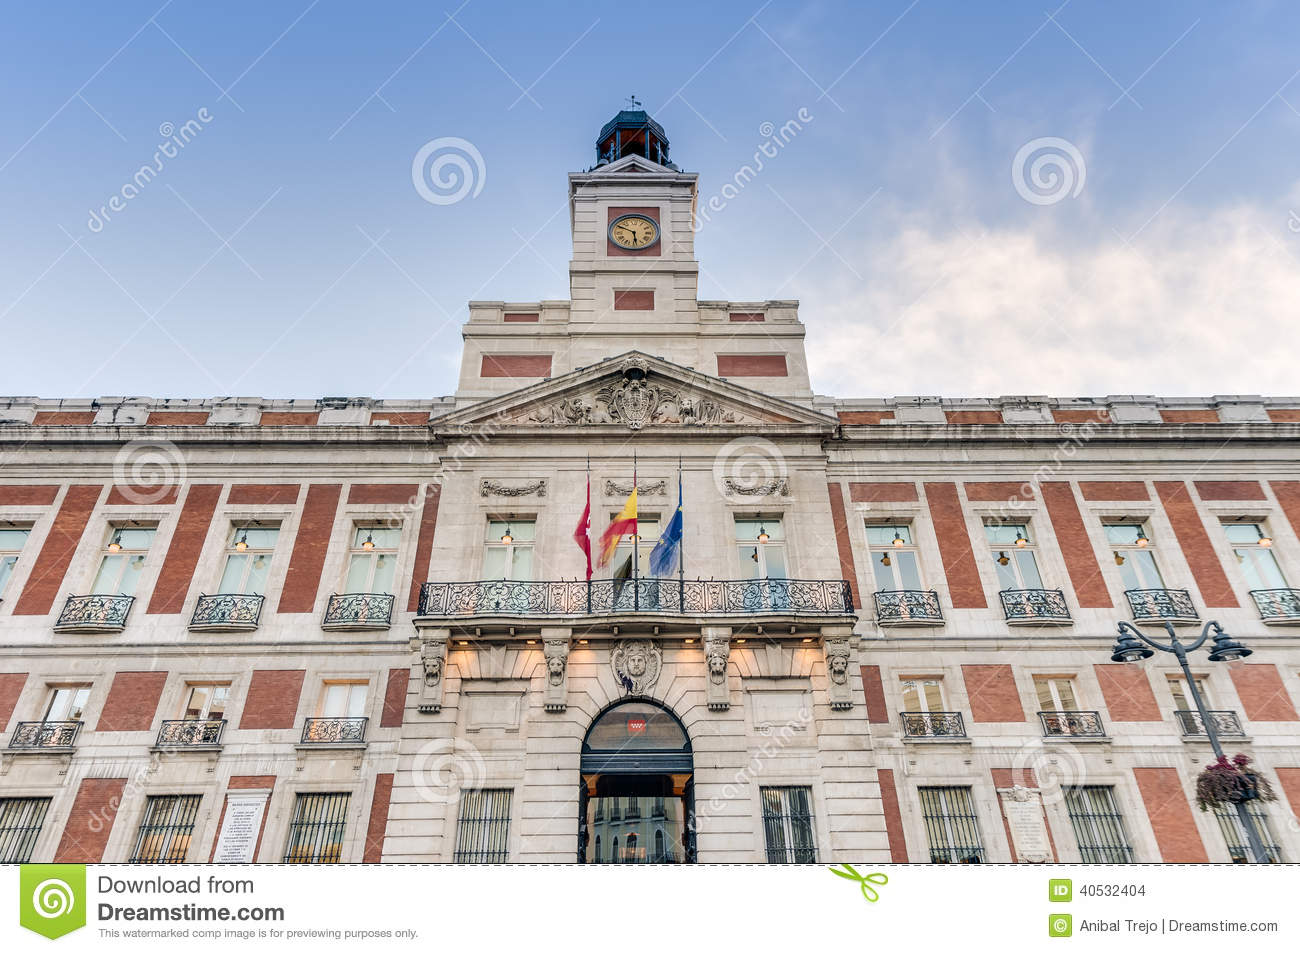 Real casa de correos building in madrid spain stock for Puerta del sol 9 madrid